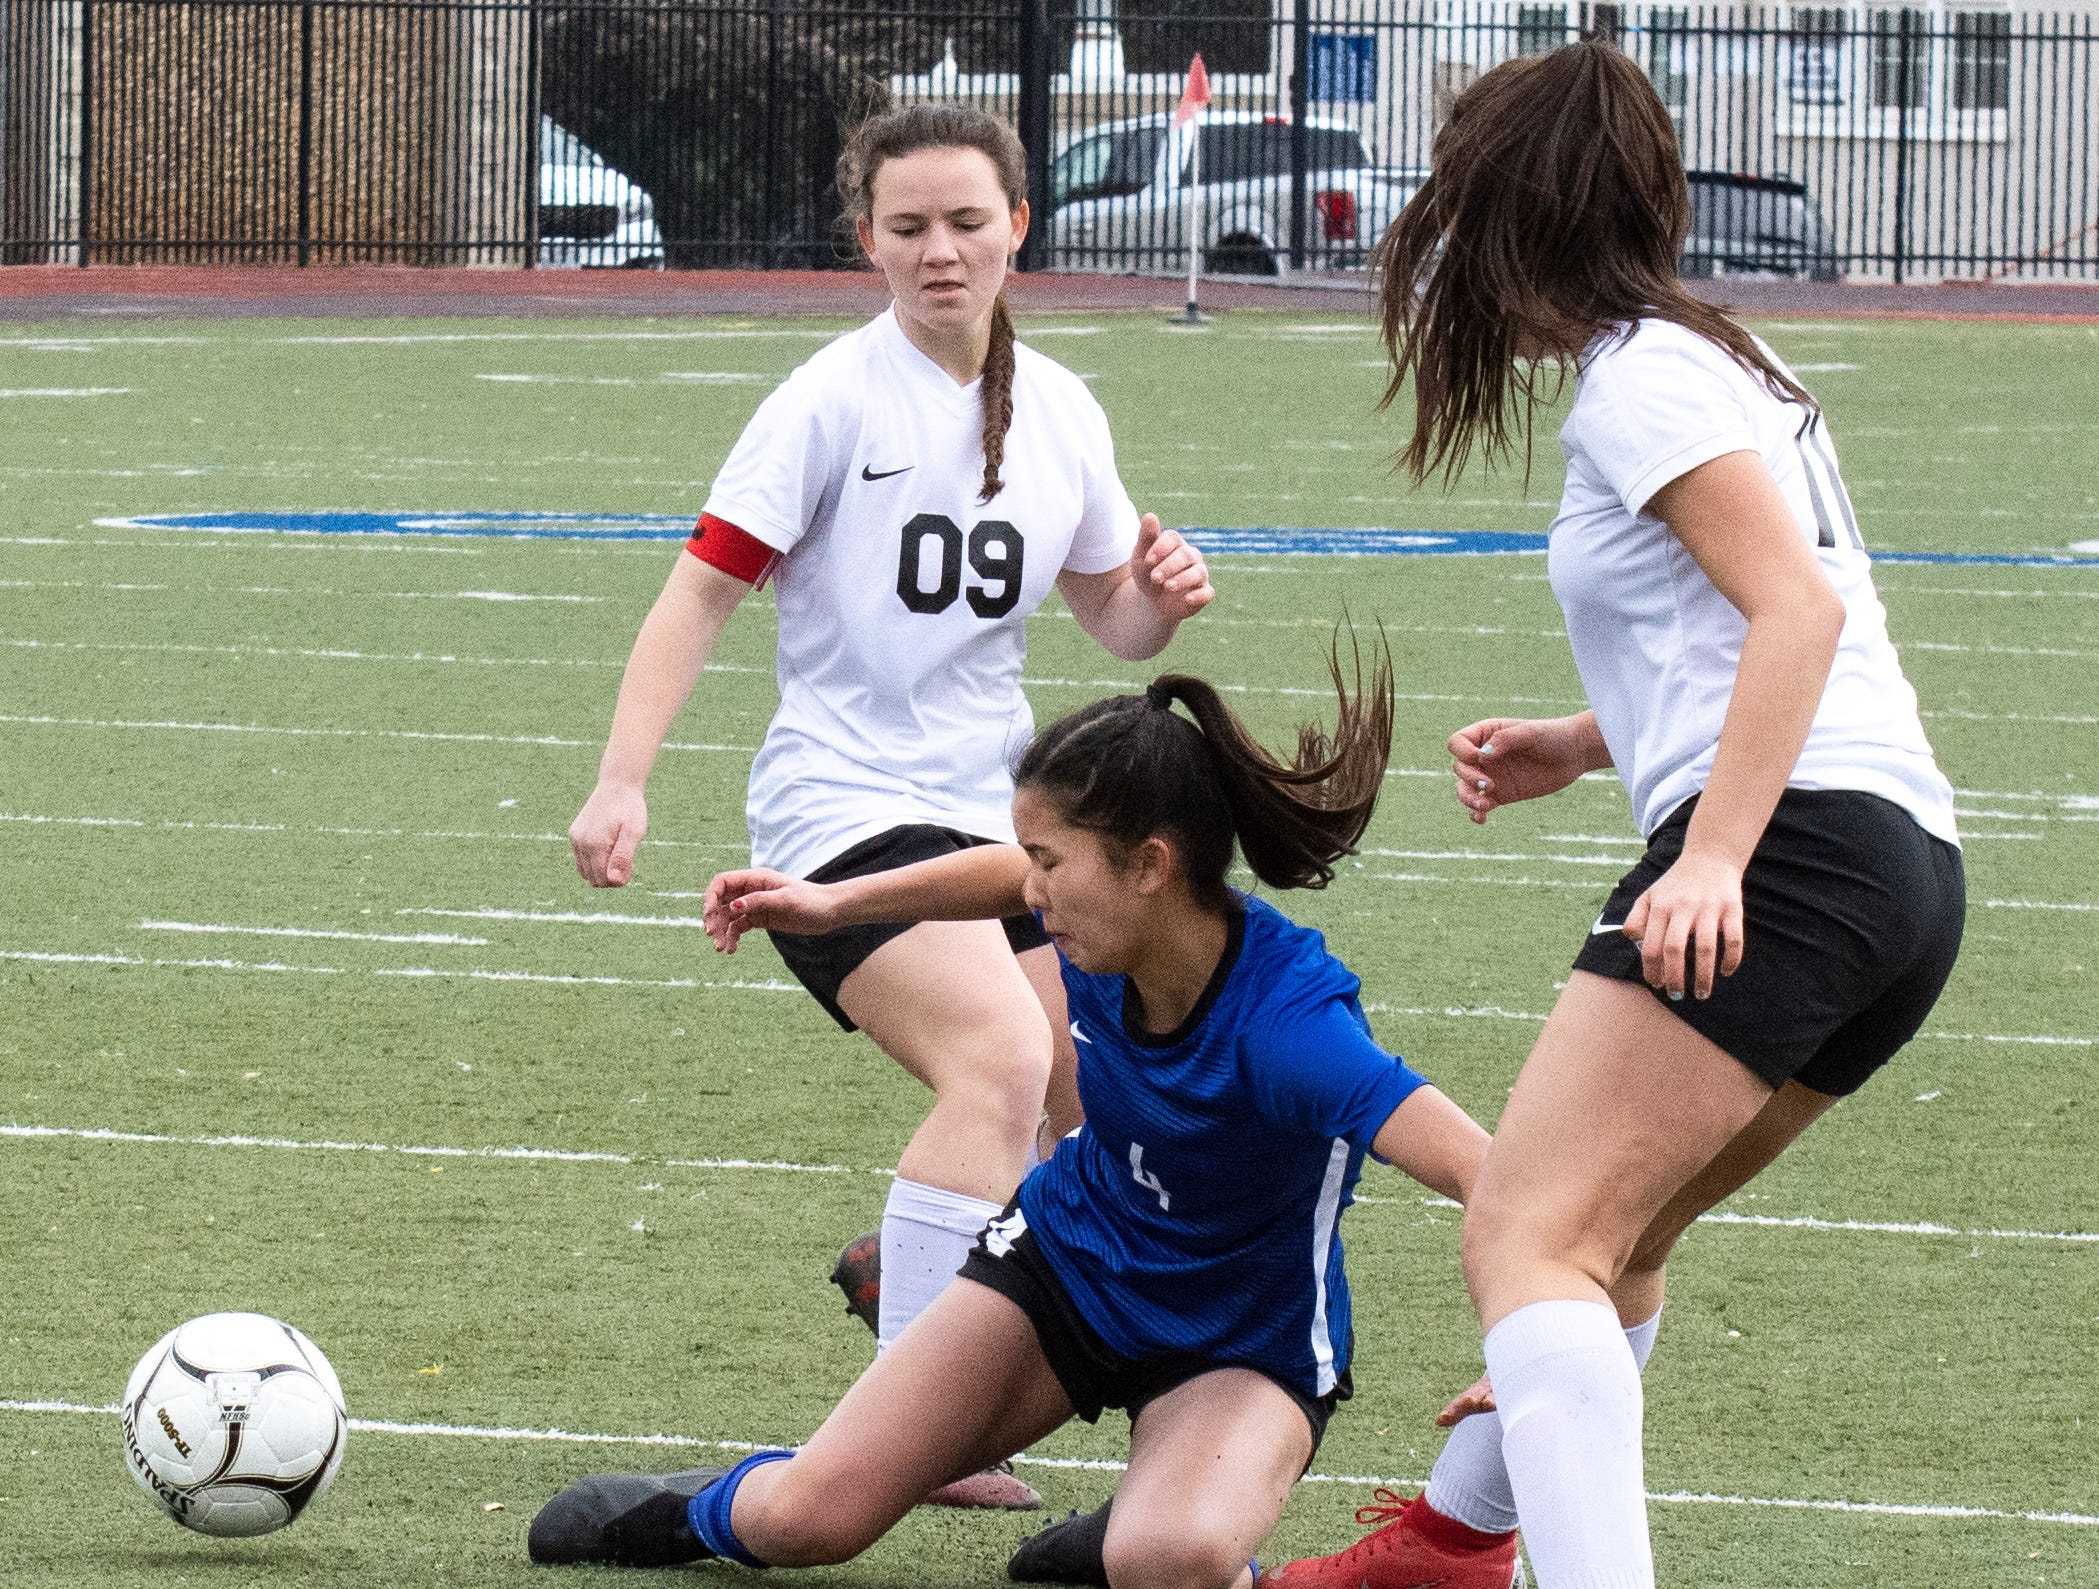 U-Prep's Savannah Leak tries to maintain control of the ball during the Panthers' 4-1 win in the Division II Northern Section championship on Saturday, Feb. 23.